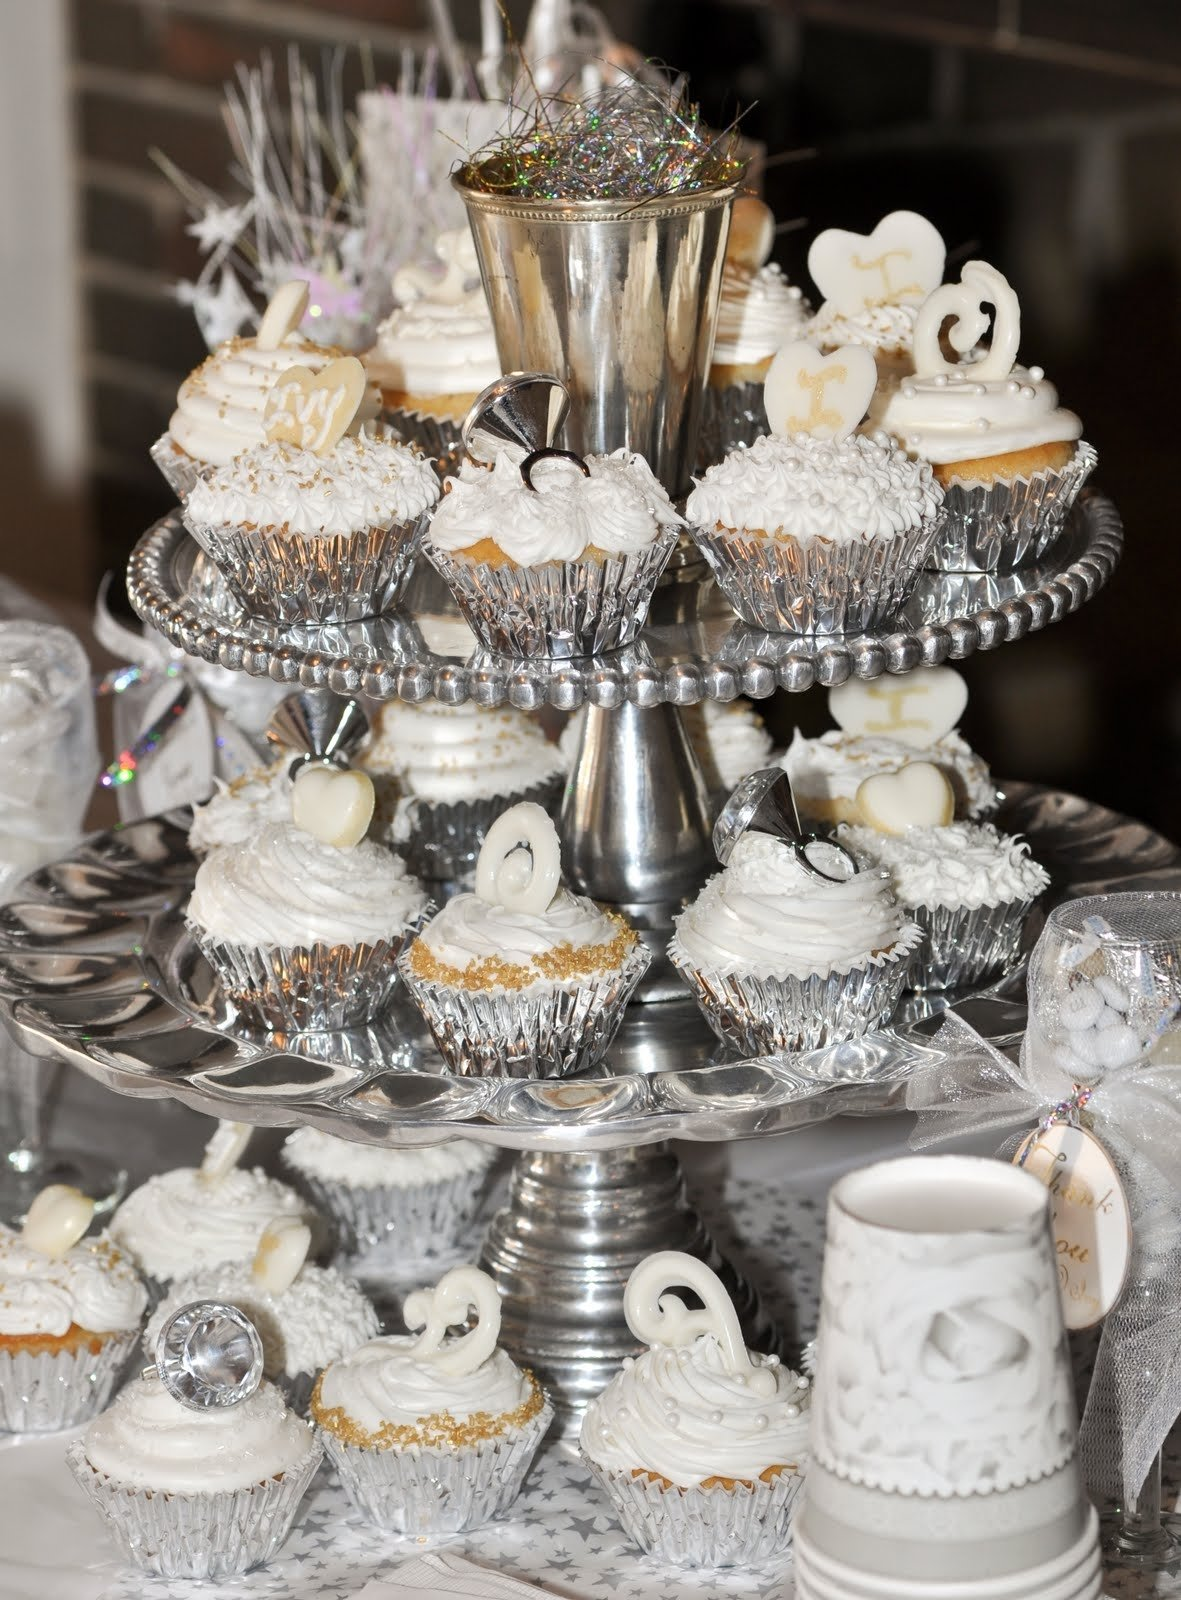 10 Wonderful All White Birthday Party Ideas white and silver cake stand party decorations google search 2020